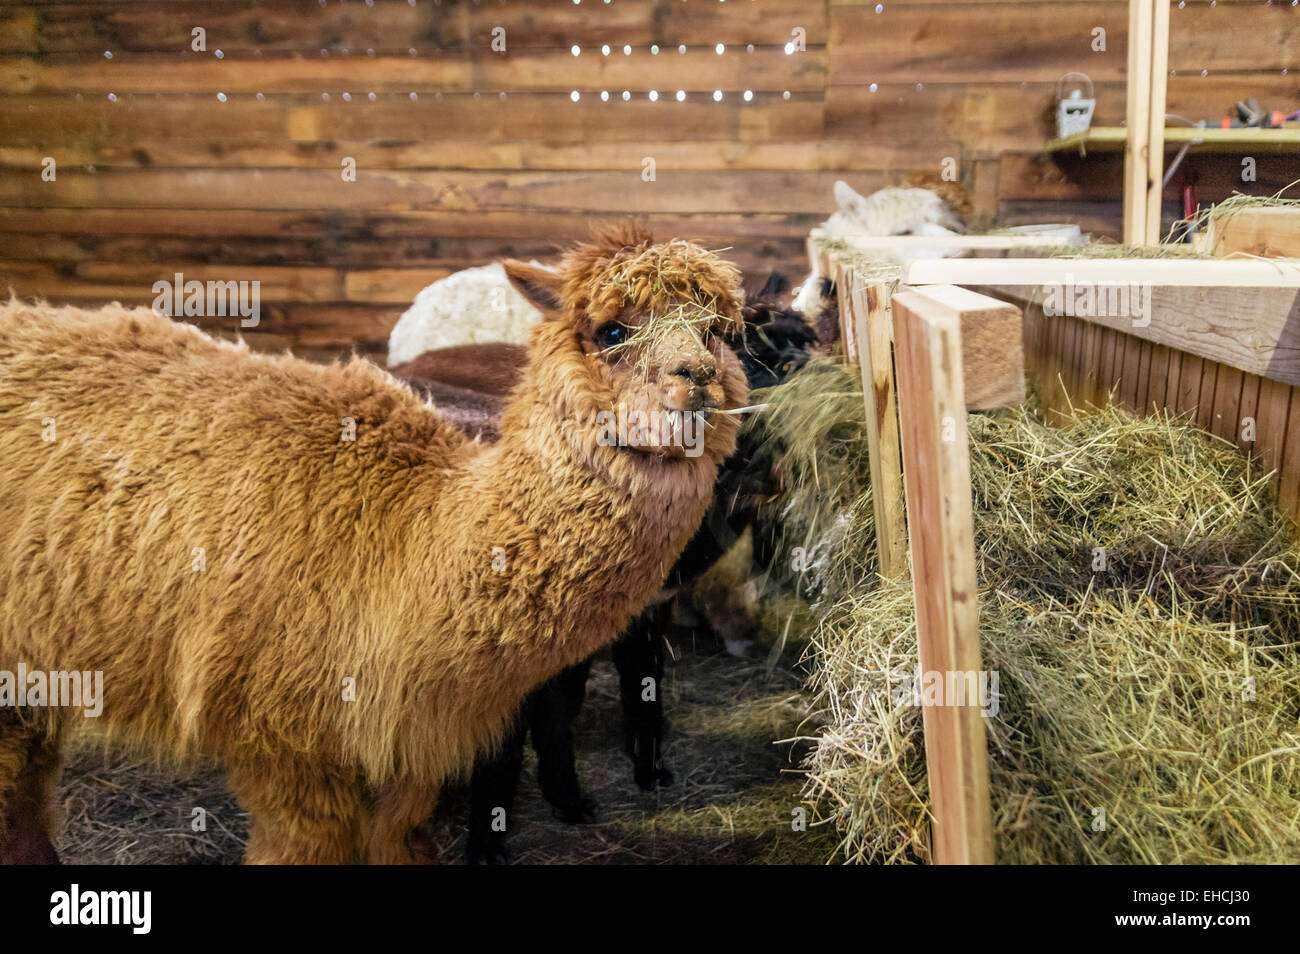 Alpaca in a stable - Stock Image